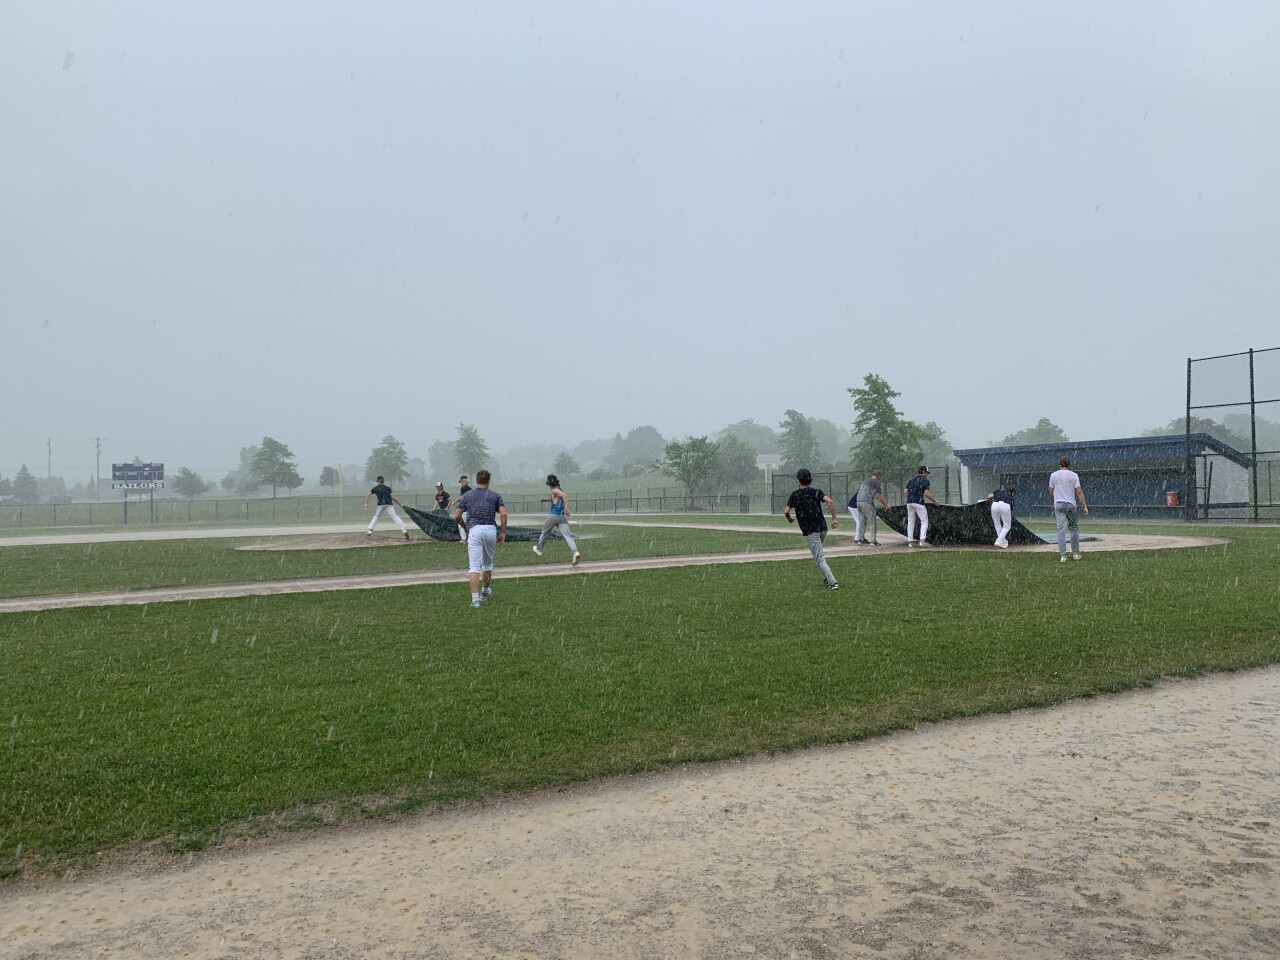 South Christian baseball practice gets rained out